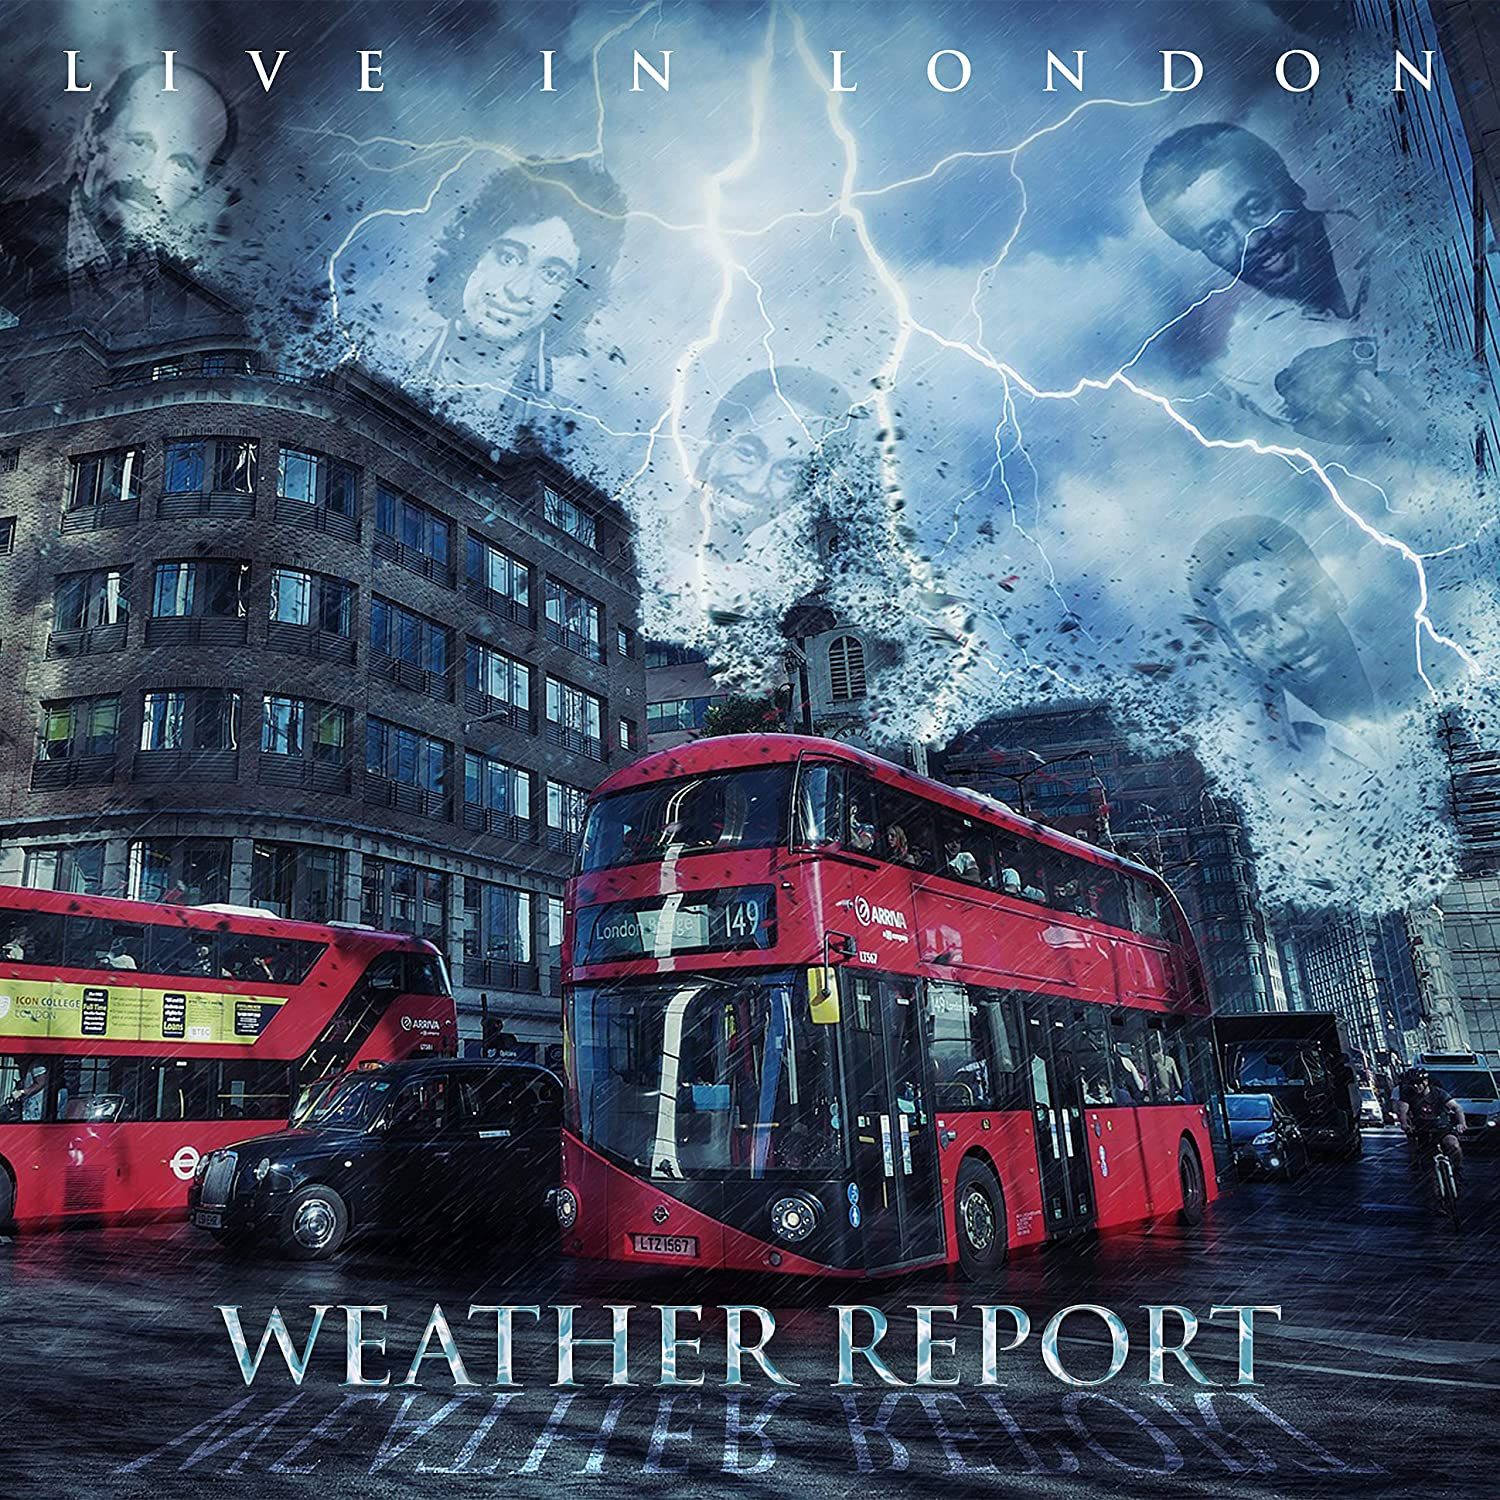 WEATHER REPORT - Live In London cover